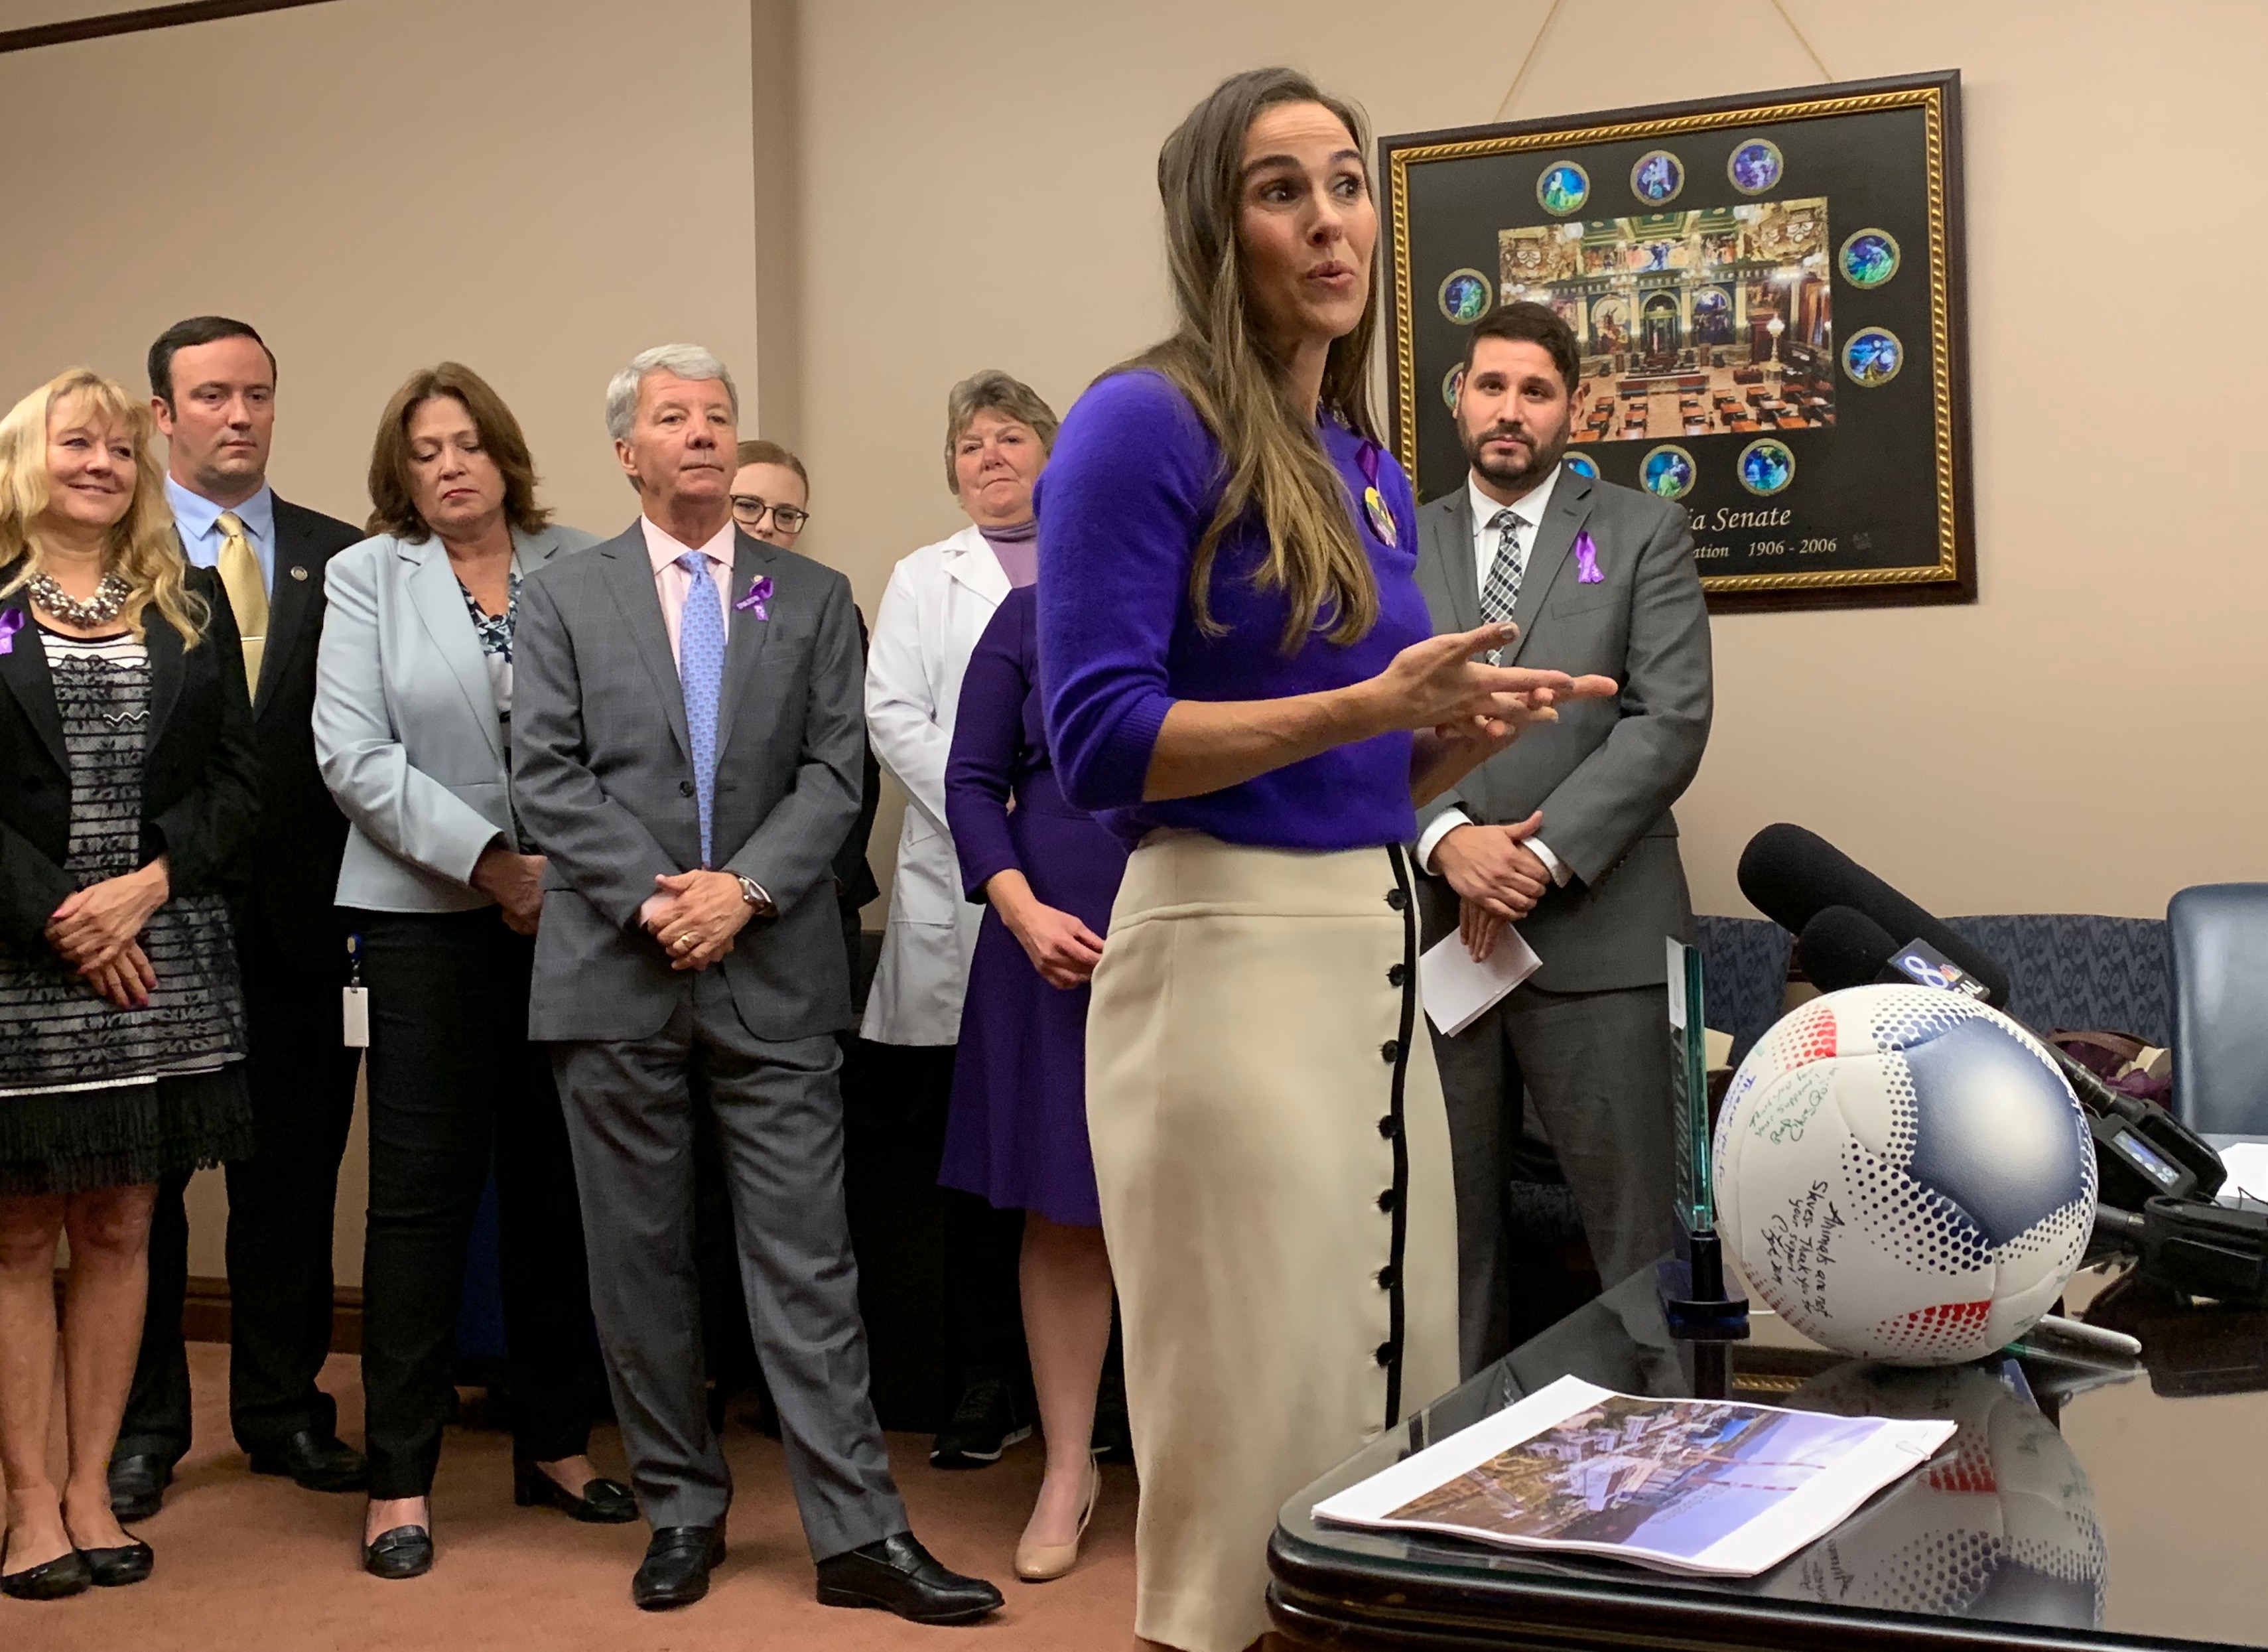 Soccer star Heather Mitts adds her voice to animal welfare advocates who favor 'kicking puppy mills out of Pennsylvania'